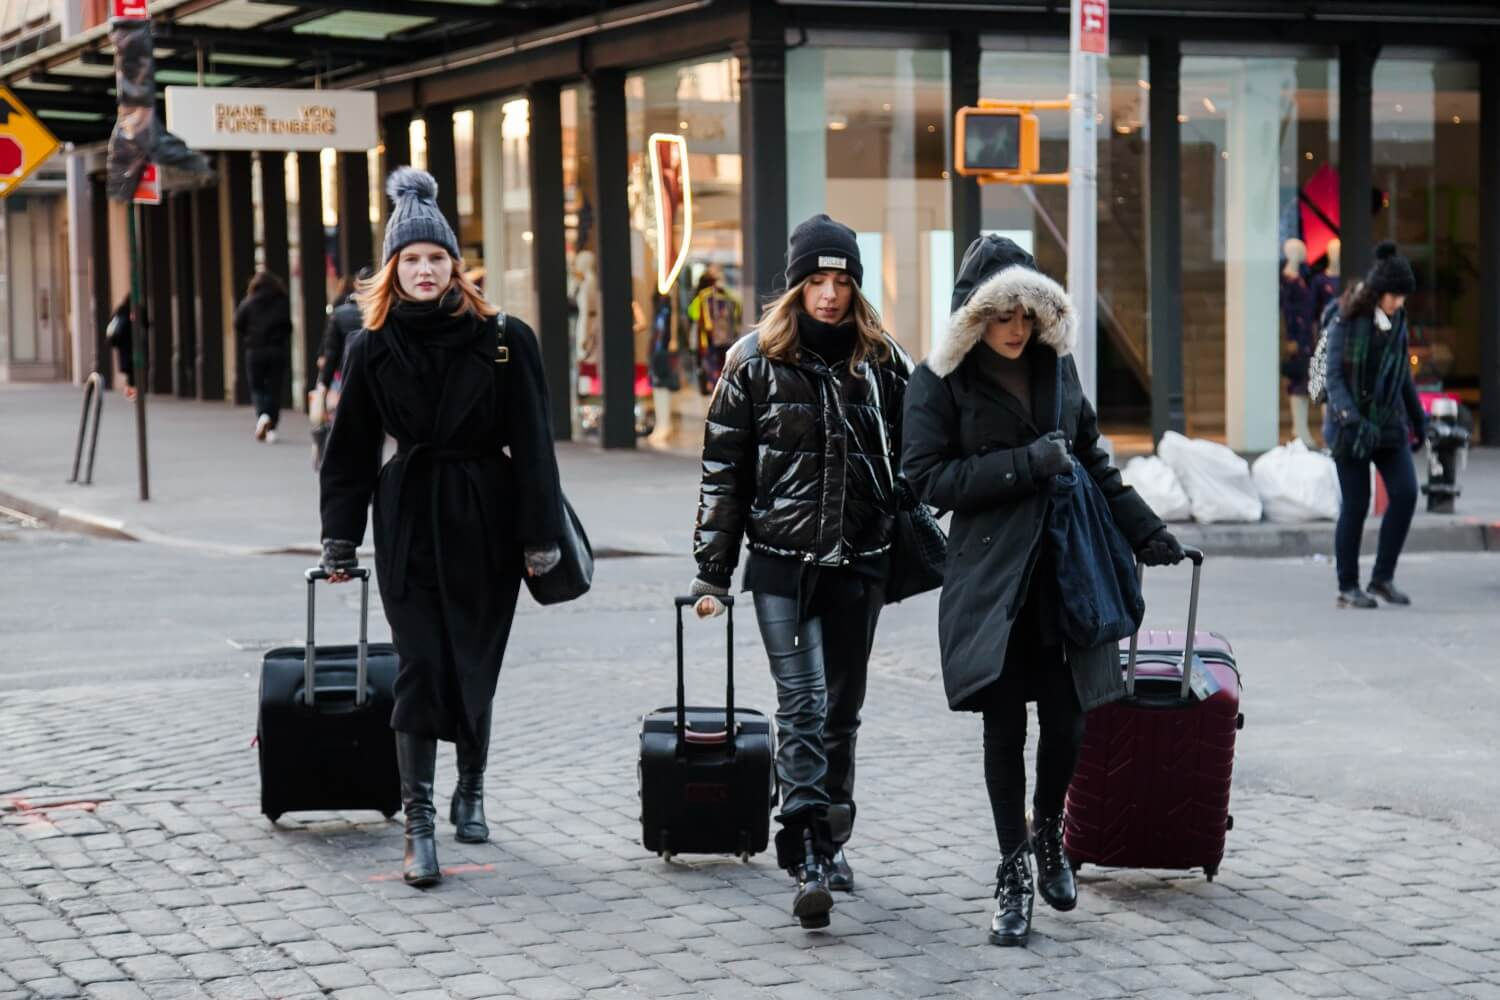 Curiosities City Secrets LuggageHero NYC Girls Walking